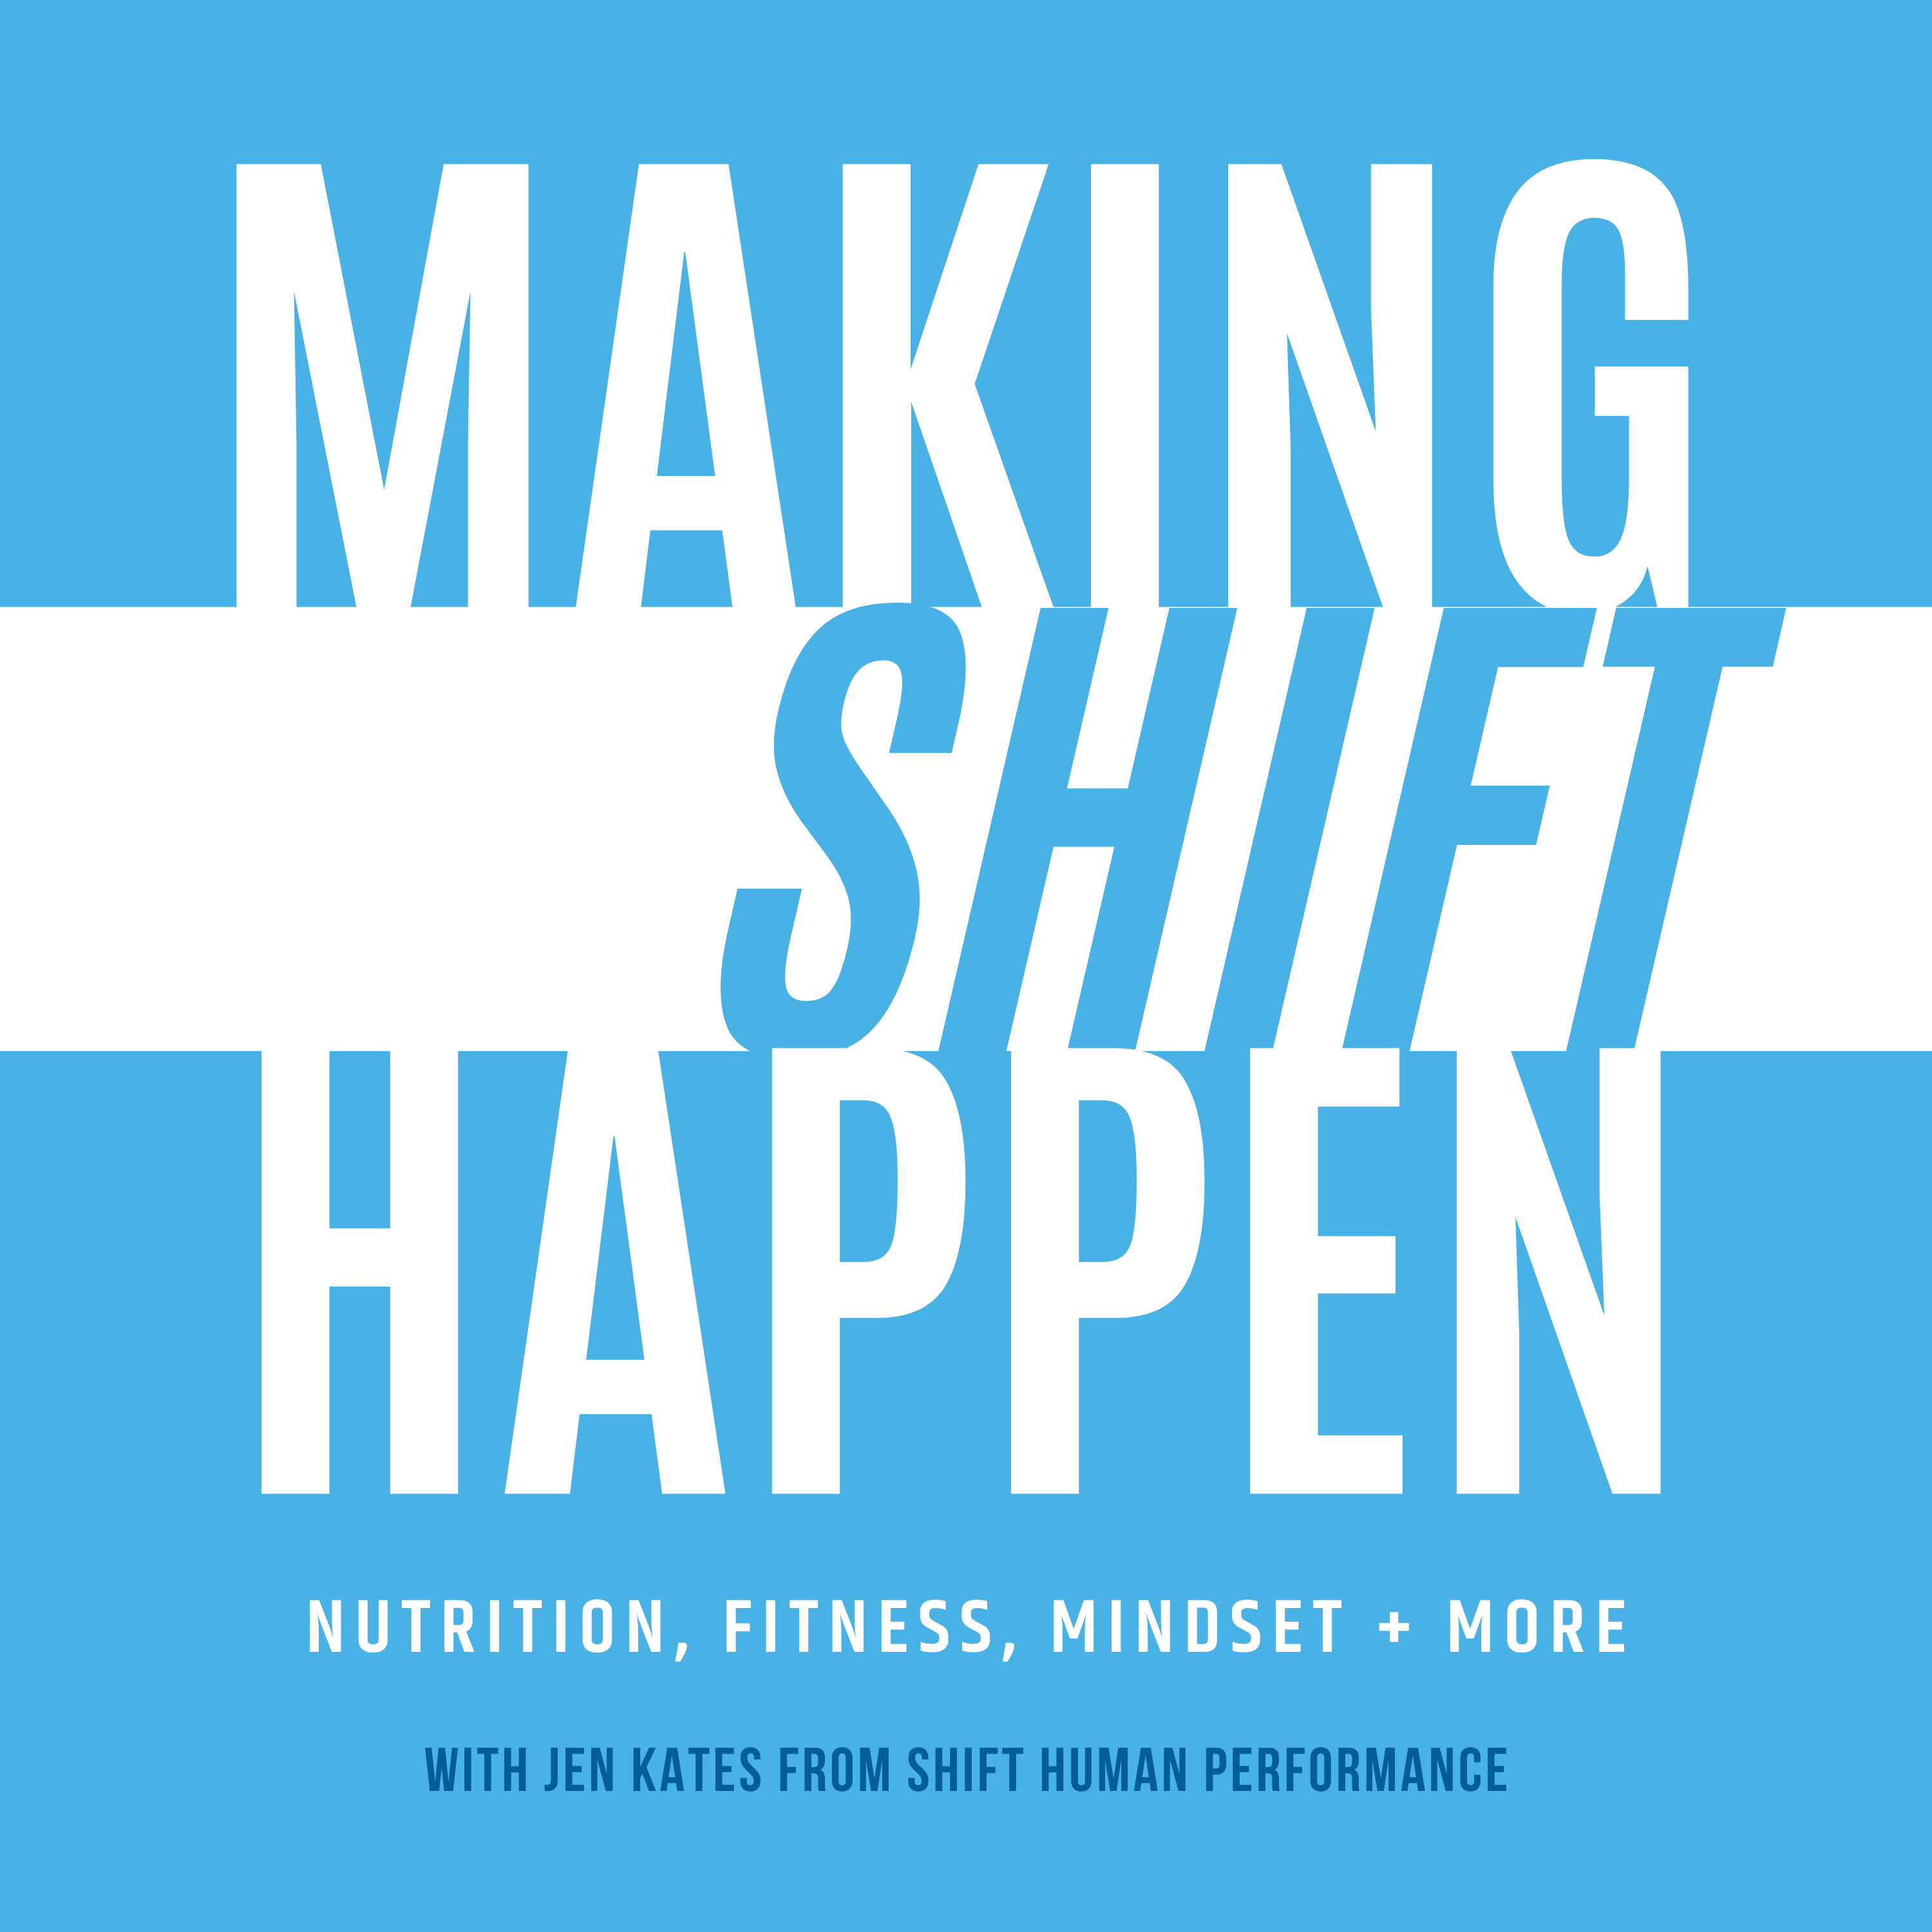 Making Shift Happen podcast logo to talk about 10k steps per day